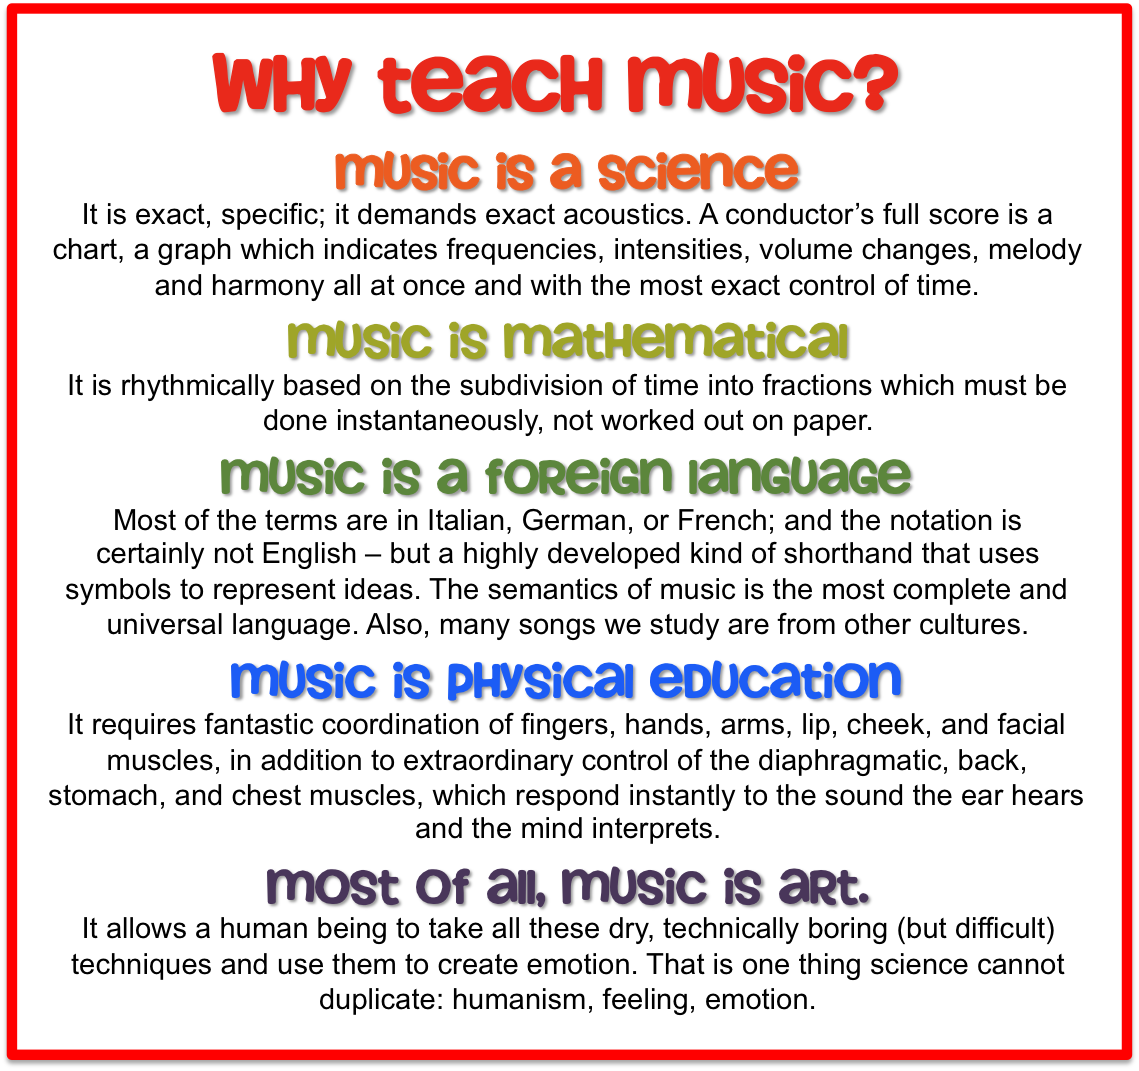 Music Education Quotes Interesting Music Education Quotes Gorgeous 35 Best Music Education Images On